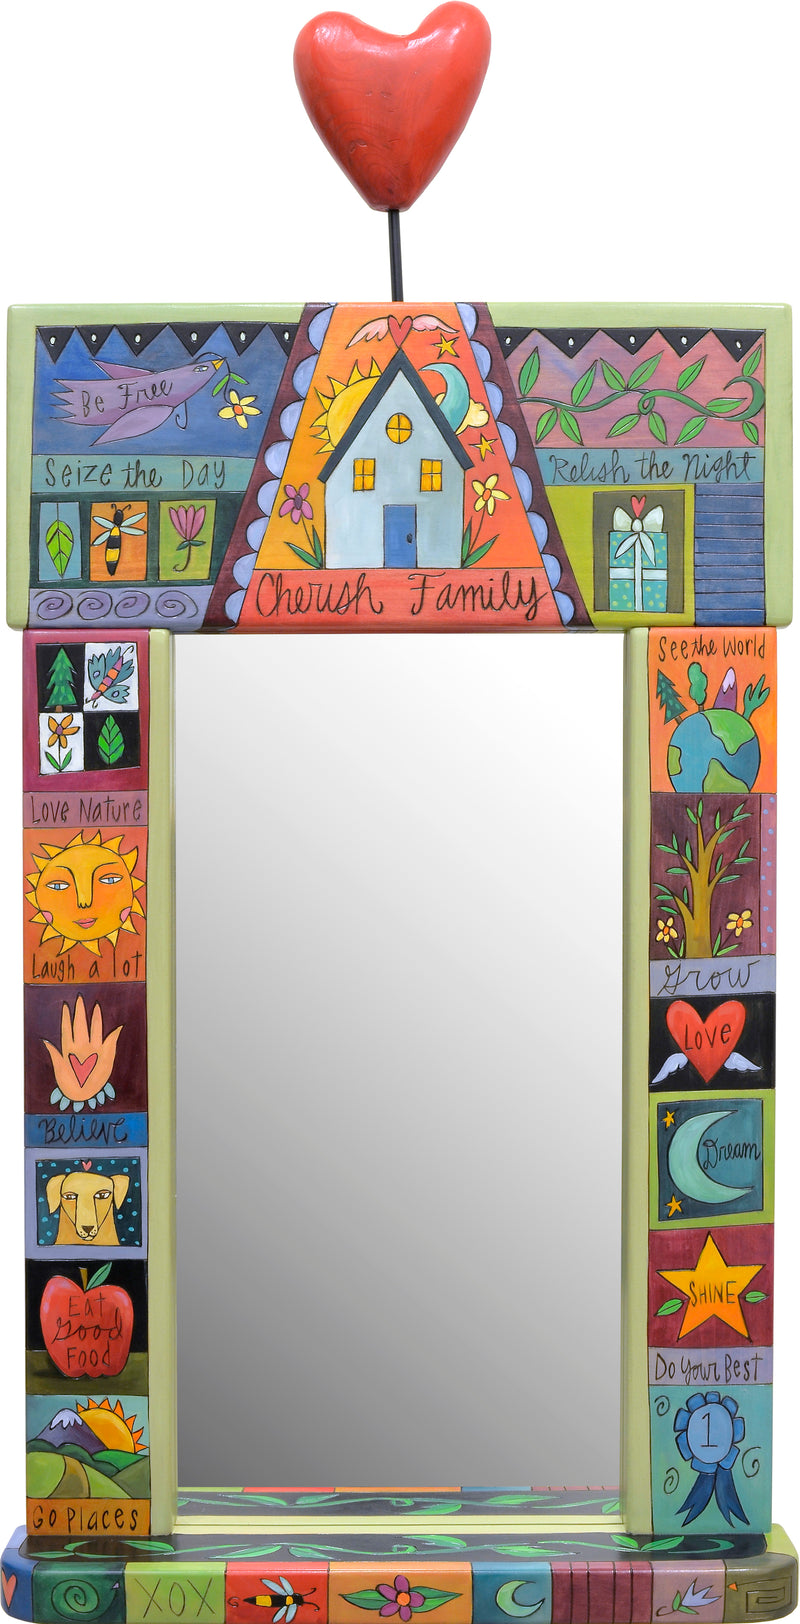 "Large Mirror –  ""Cherish Family"" crazy quilt design mirror"